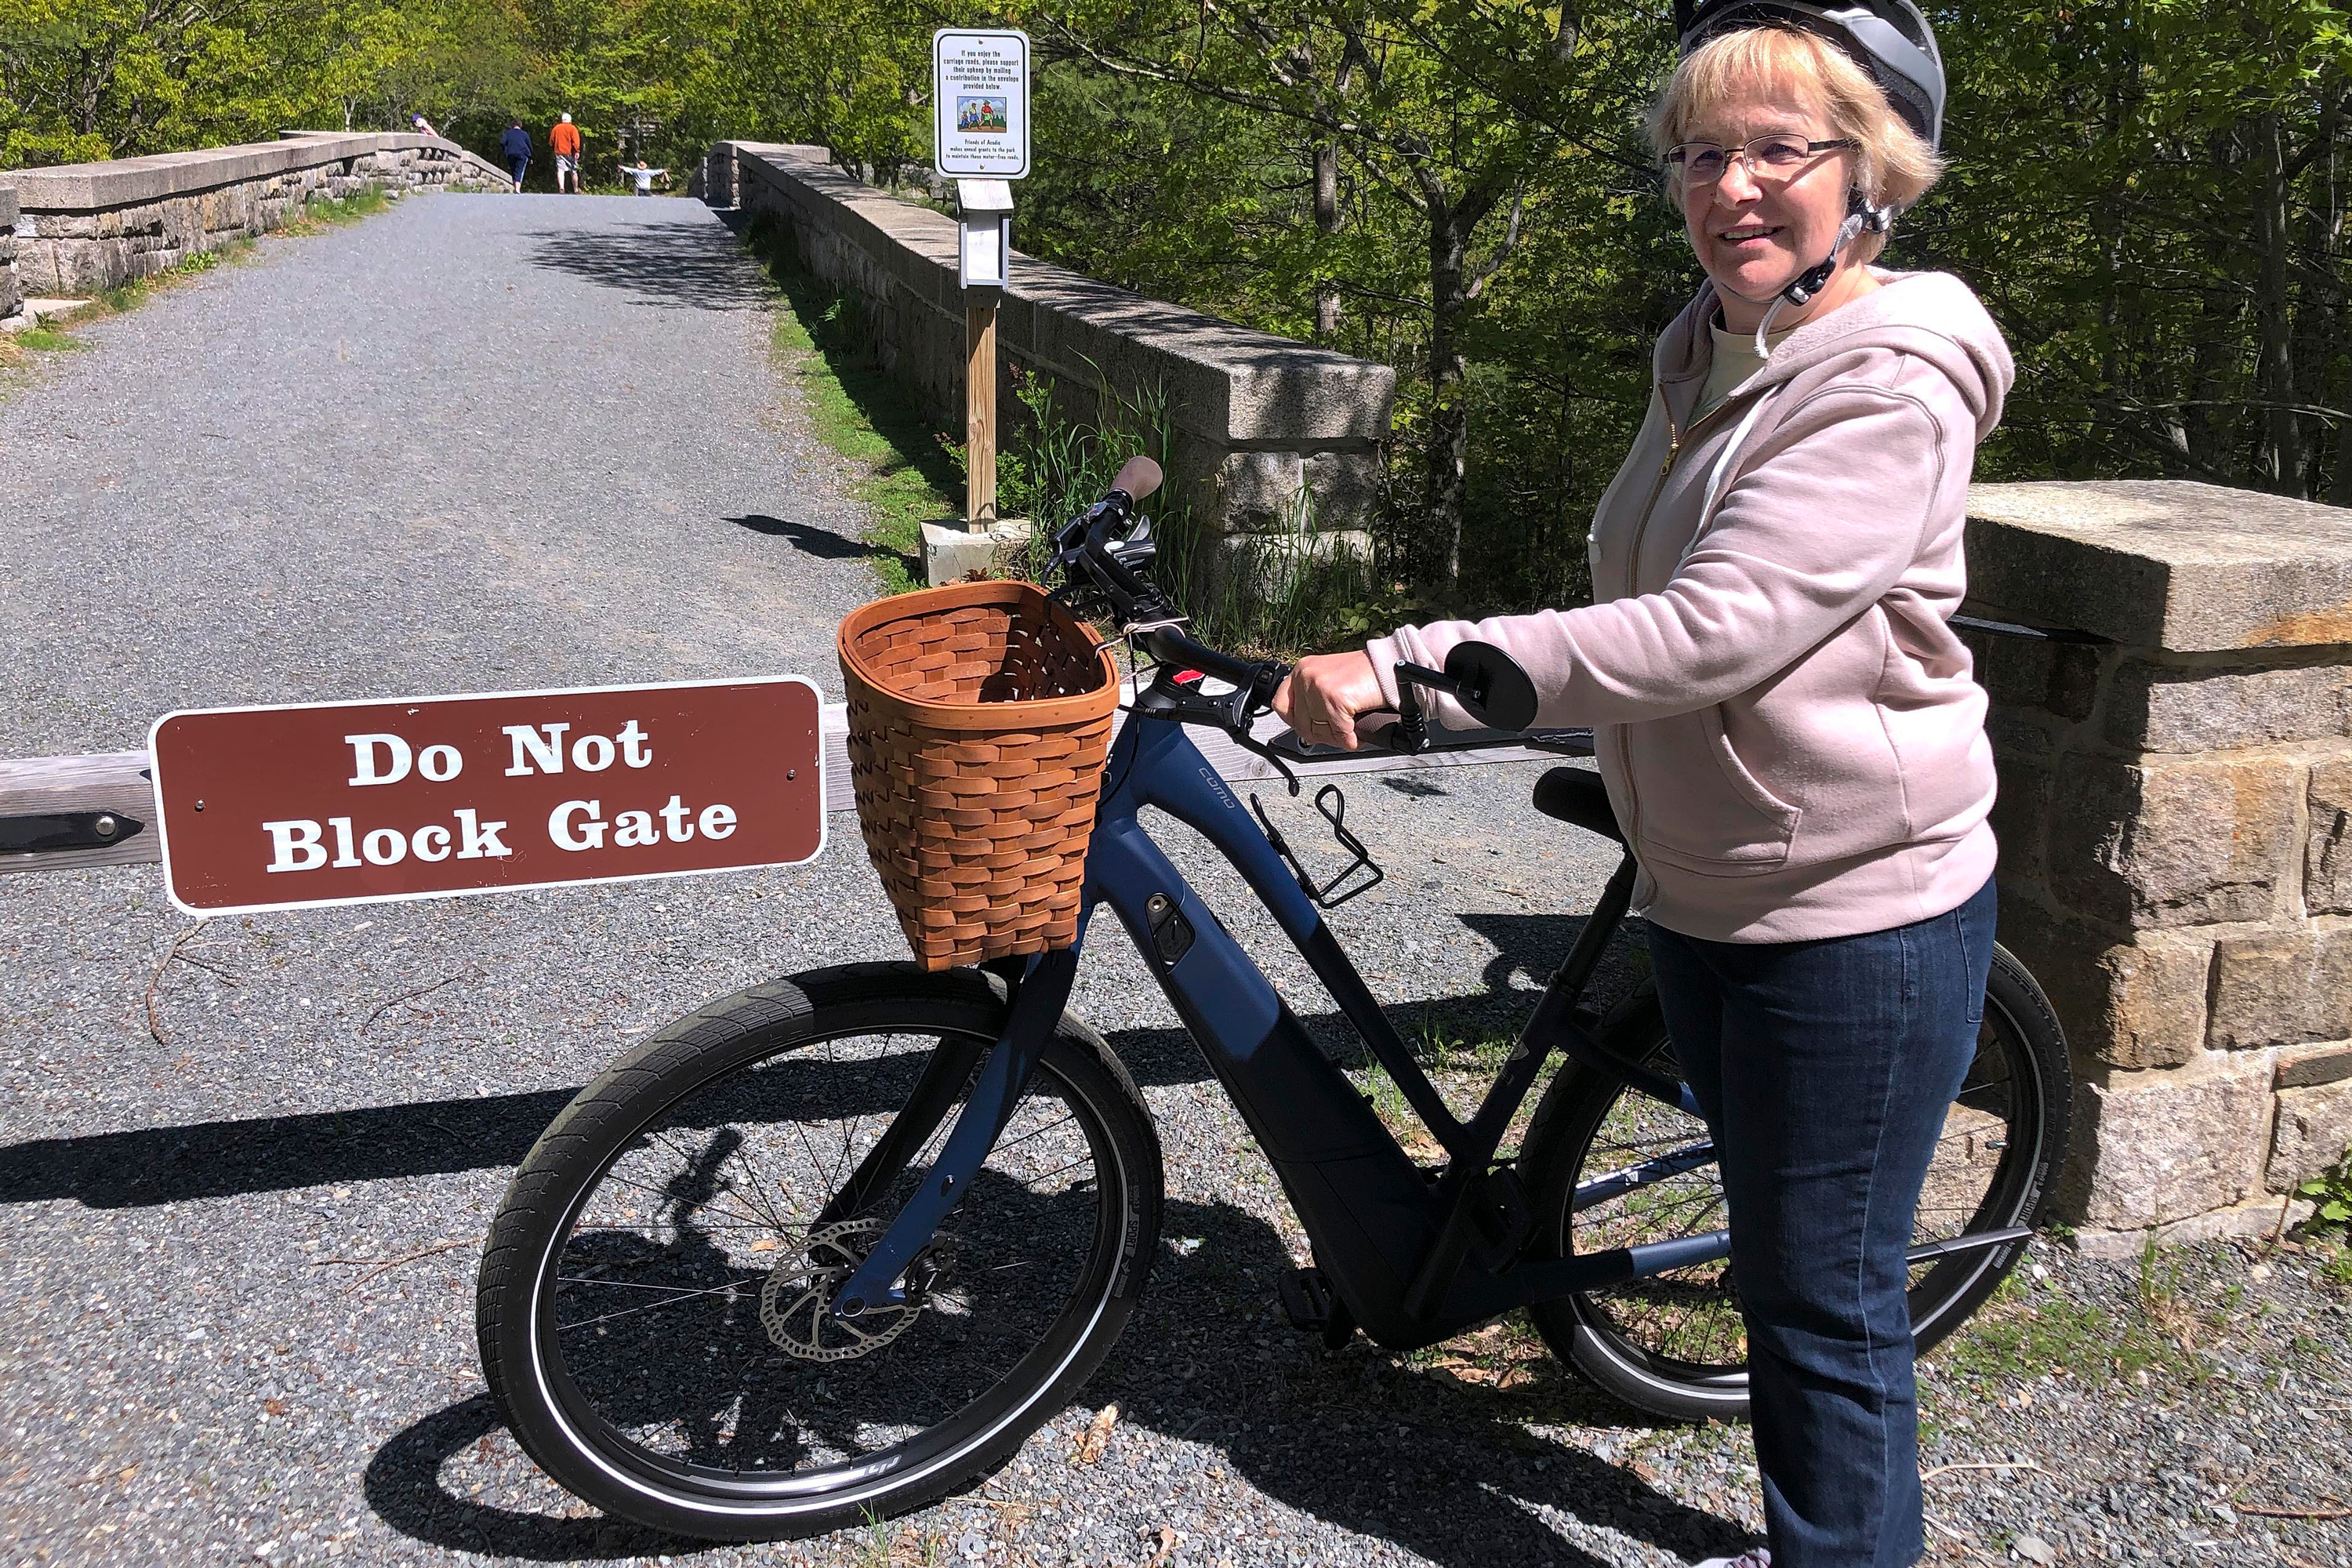 Janice Goodwin stands by her electric-assist bicycle at a gate near the start of the carriage path system where bikes such as her are banned inside Acadia National Park, in this photo June 8, 2018, in Bar Harbor, Maine. Electric-assist bikes are allowed on paved roads but are banned on bike paths in national parks.